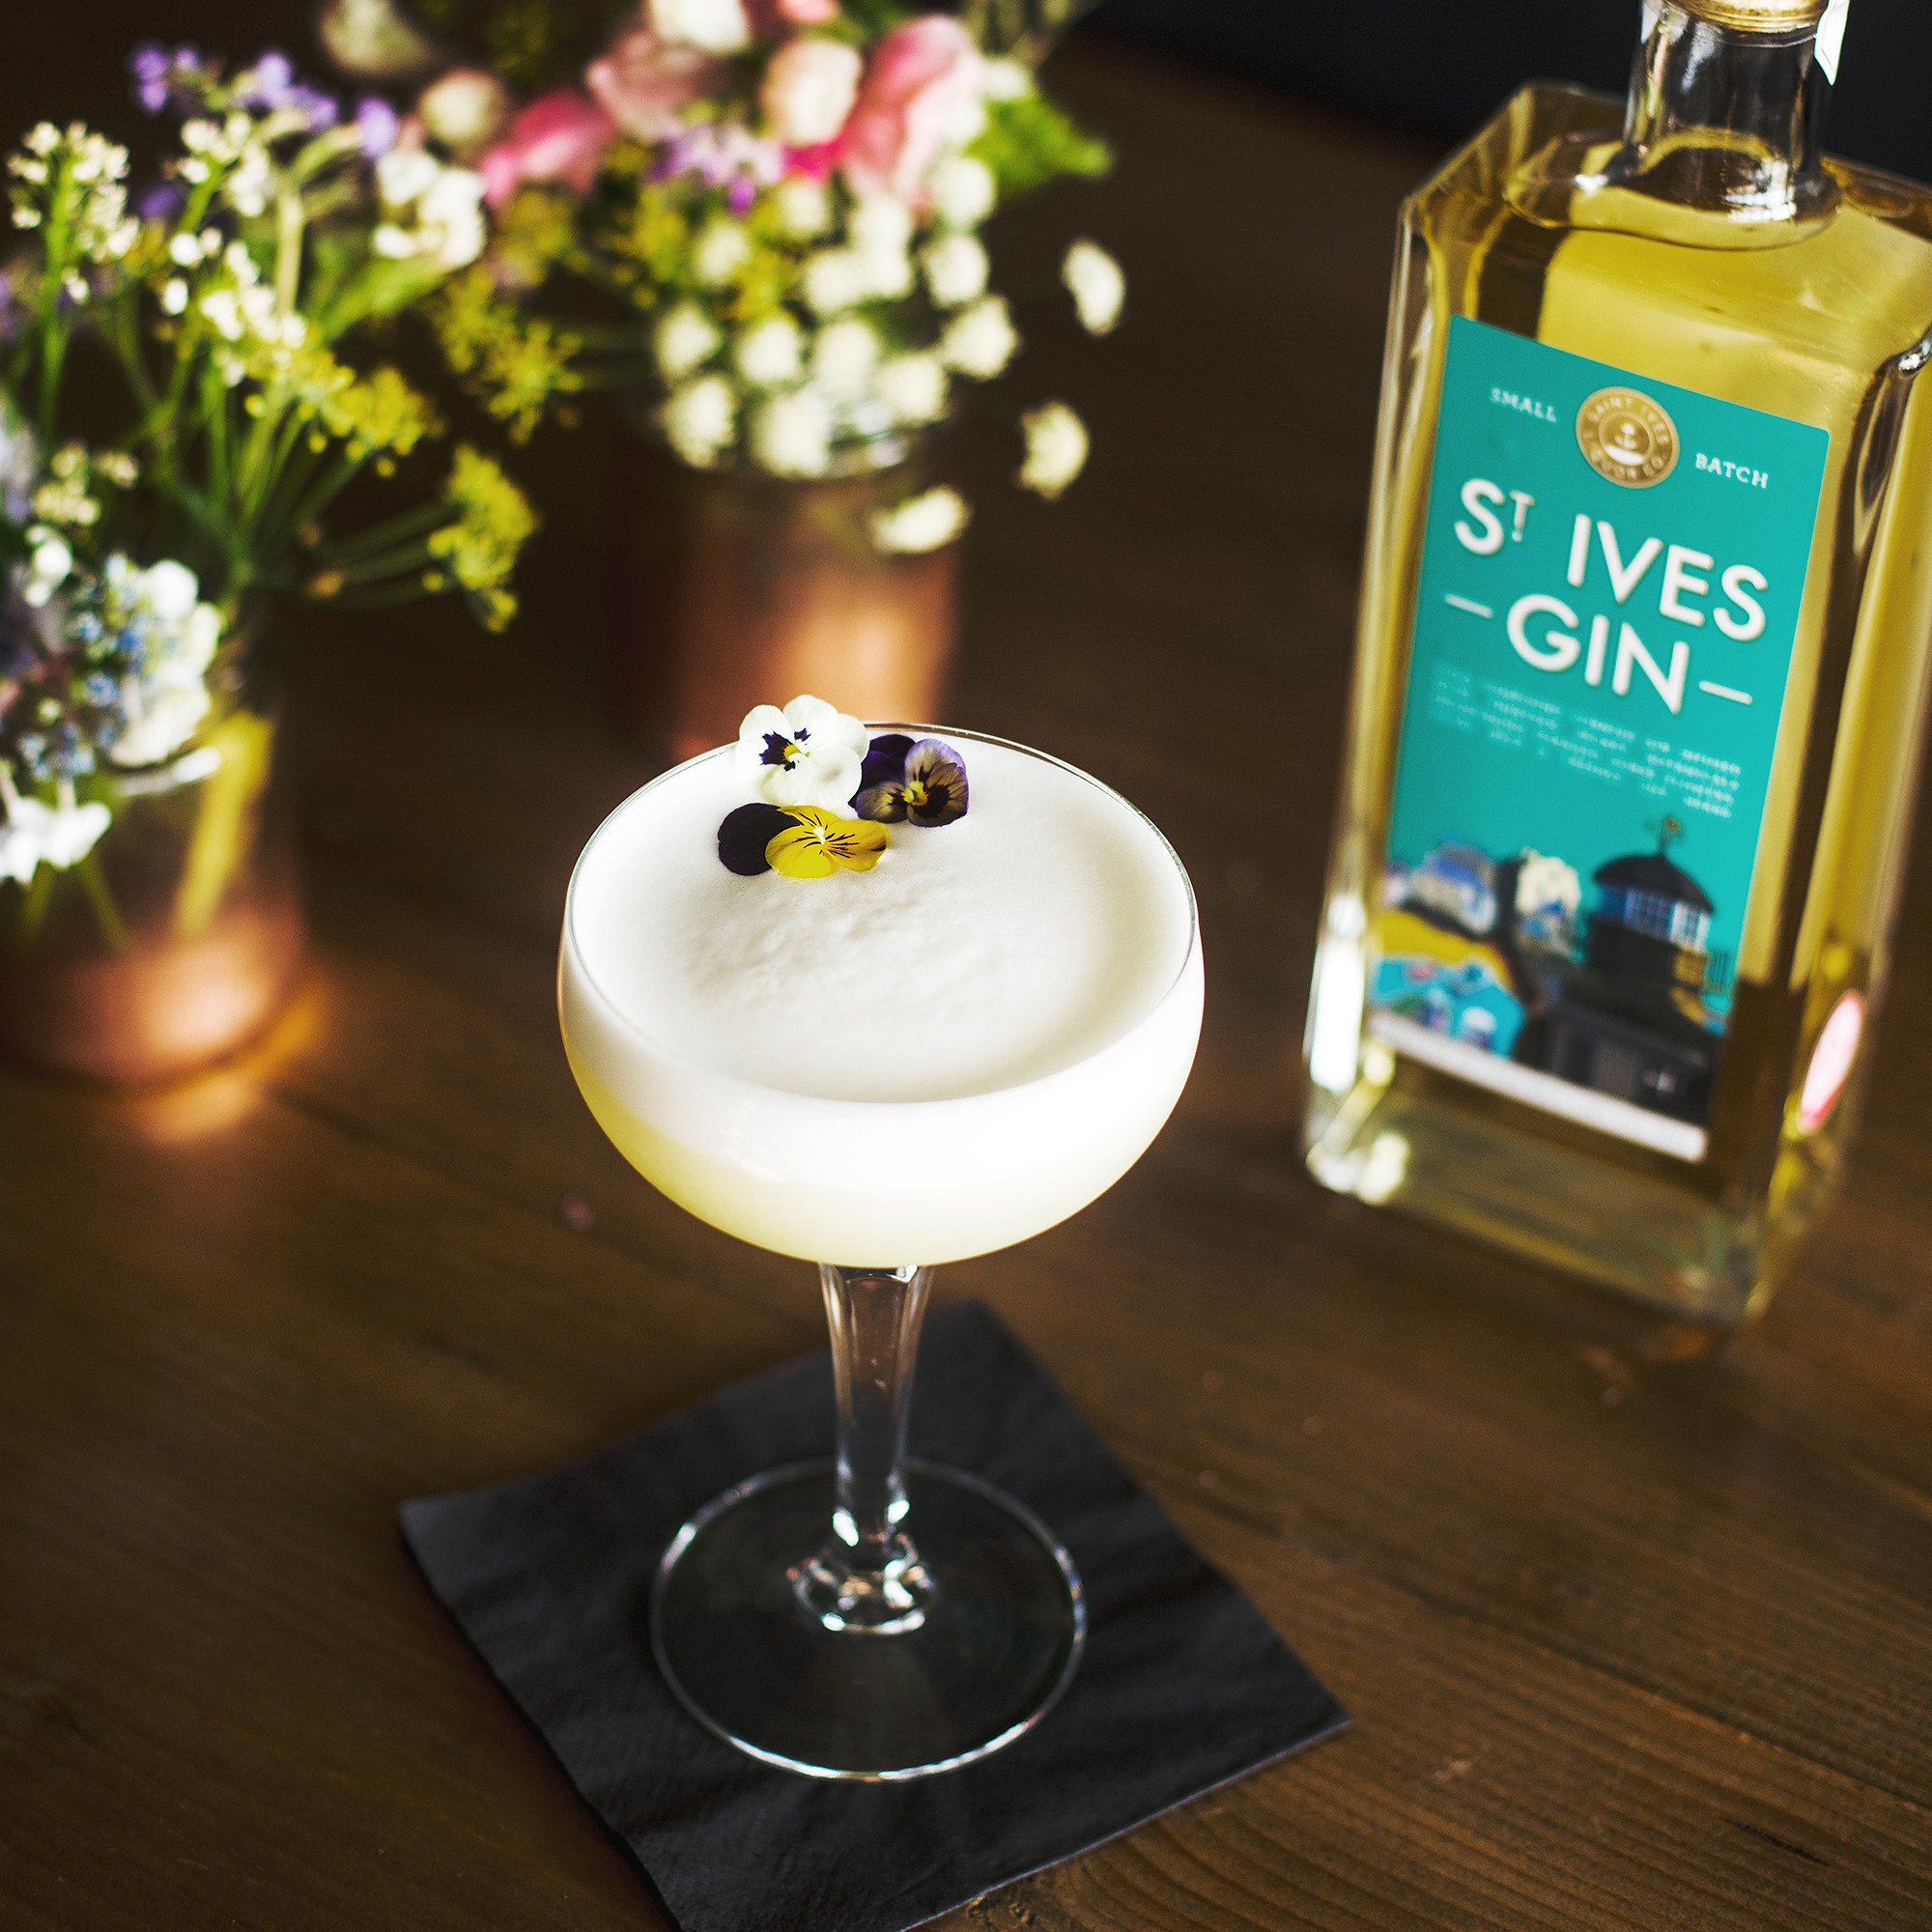 The Cornish Lady Cocktail with St Ives Gin